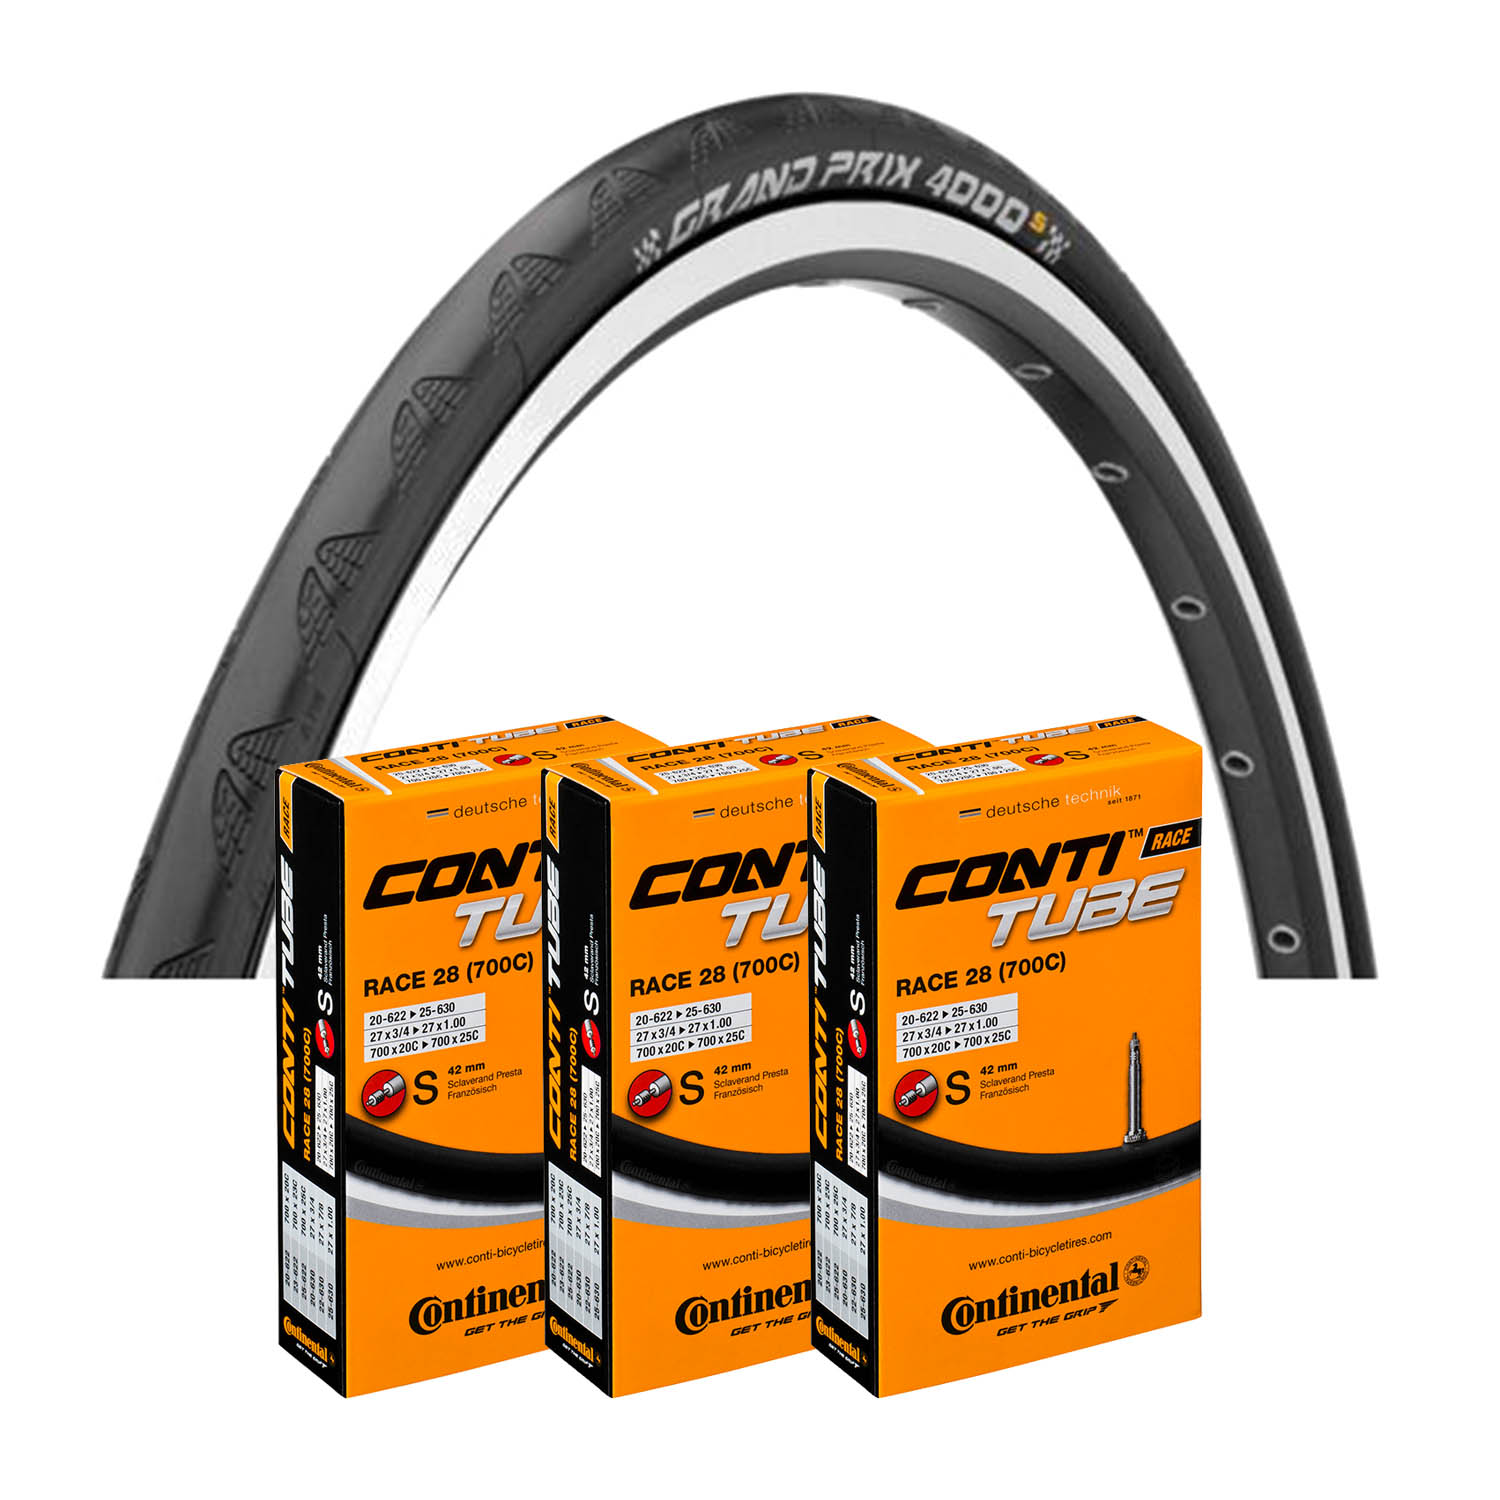 GP 4000 S Tyre & Pack of 3 Tubes